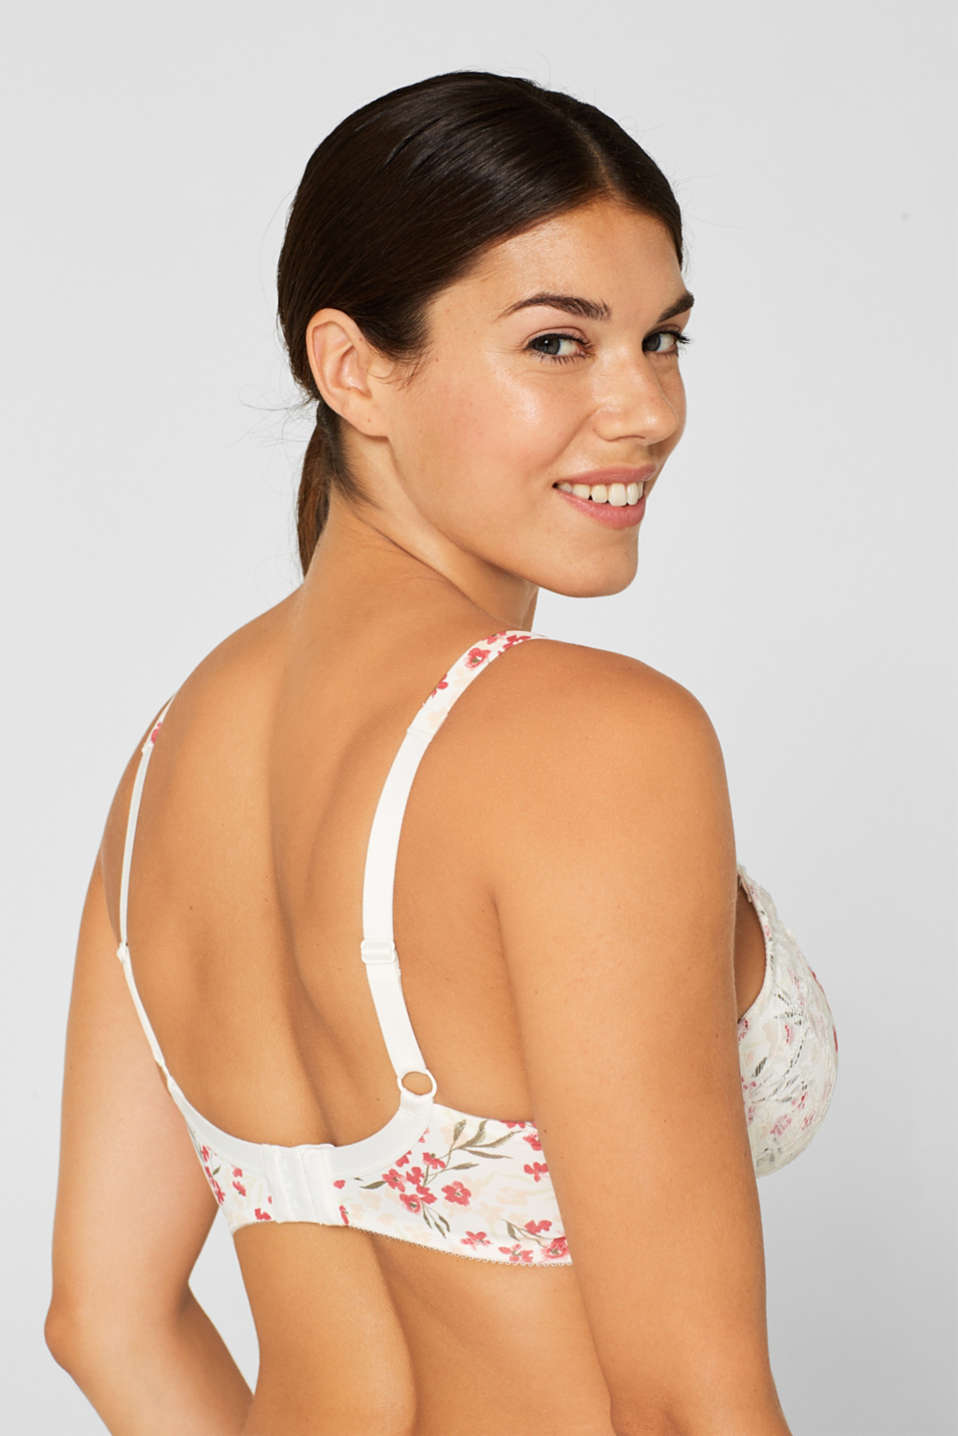 Unpadded underwire bra with a print, for larger cup sizes, OFF WHITE, detail image number 3